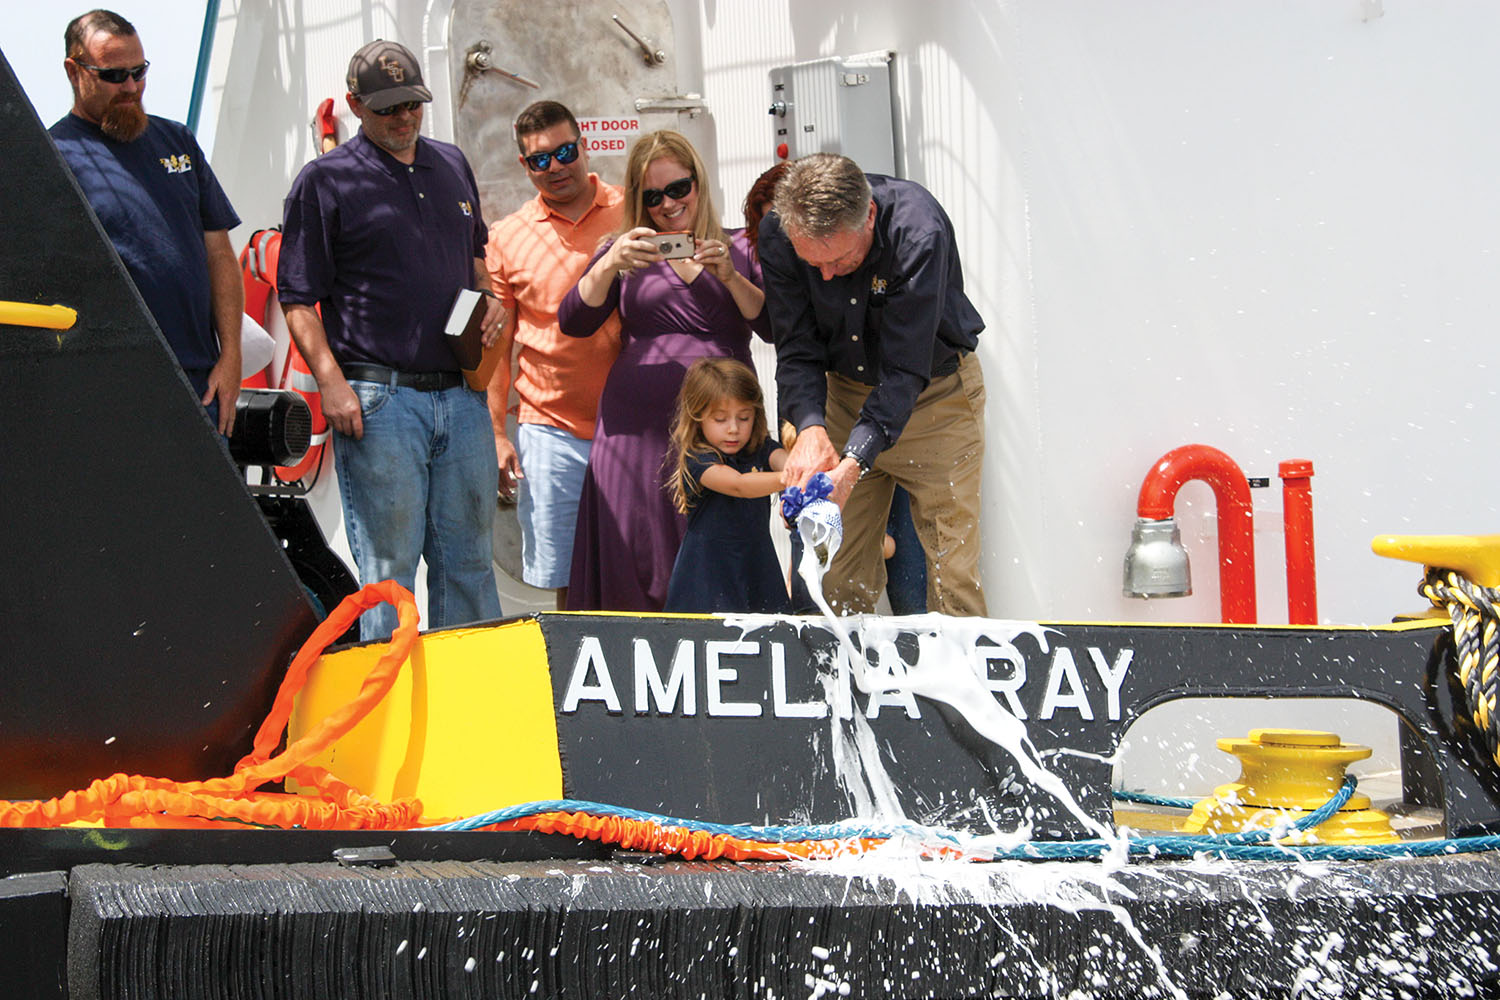 With a little help from her grandfather, Amelia Ray Balser breaks bottle to christen her namesake vessel. (Photo courtesy of L&L Marine)